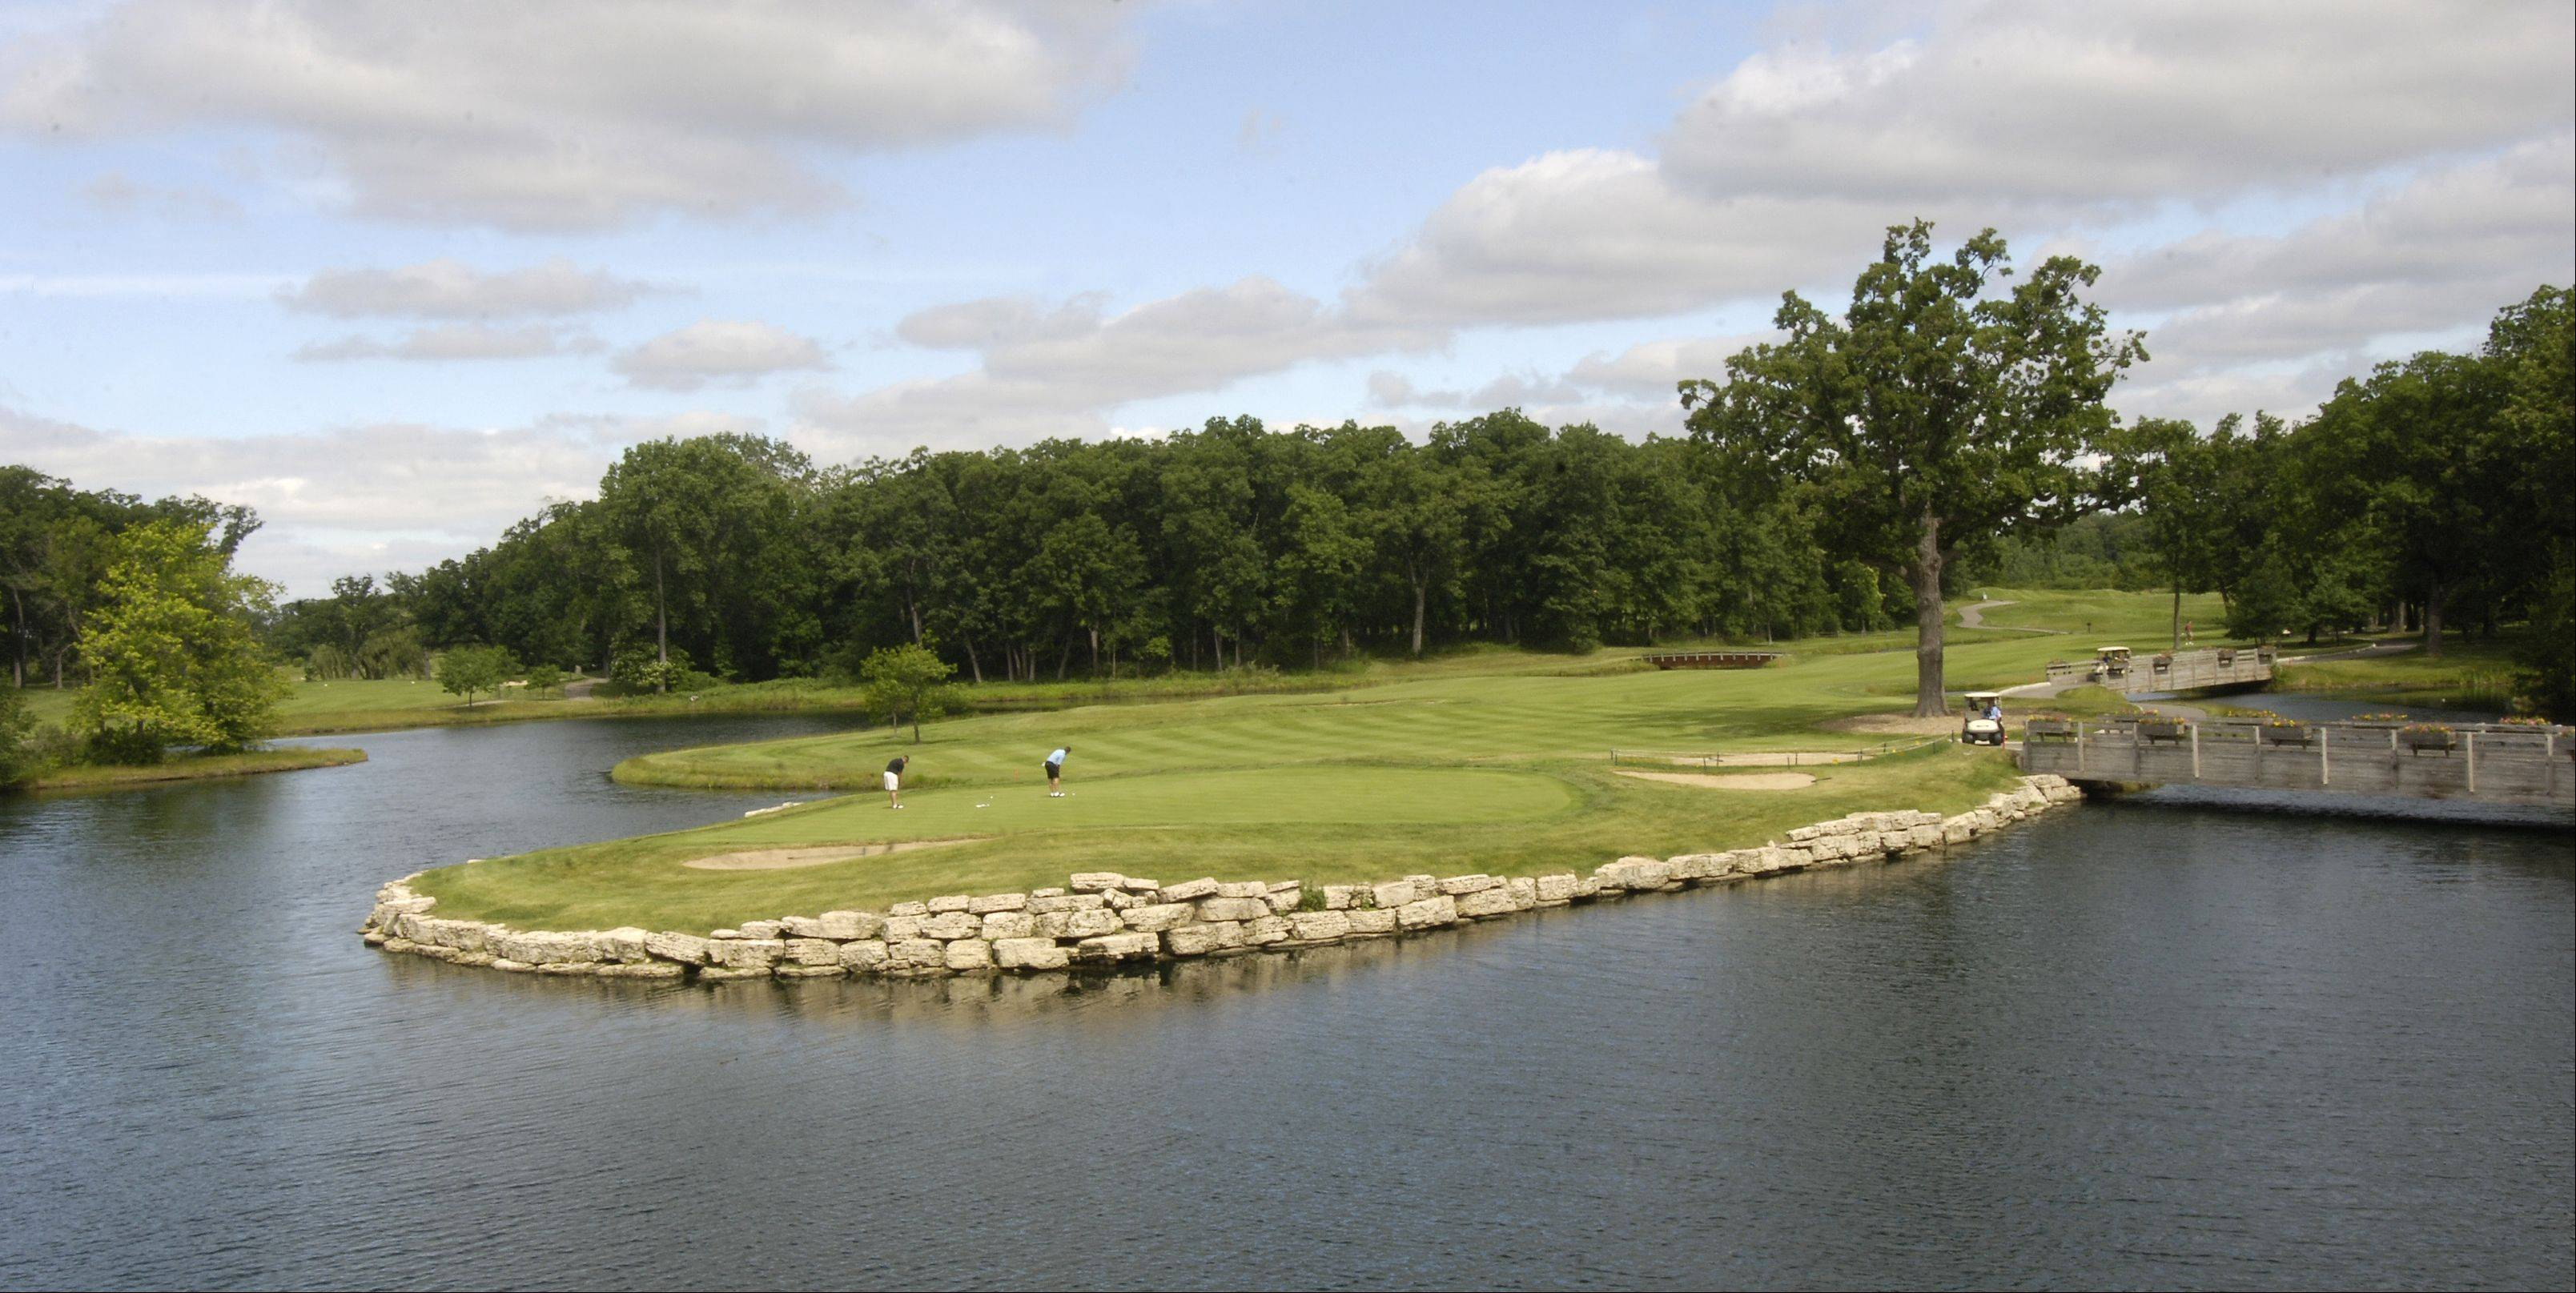 KemperSports of Northbrook has been selected to manage Cantigny Golf in Wheaton.